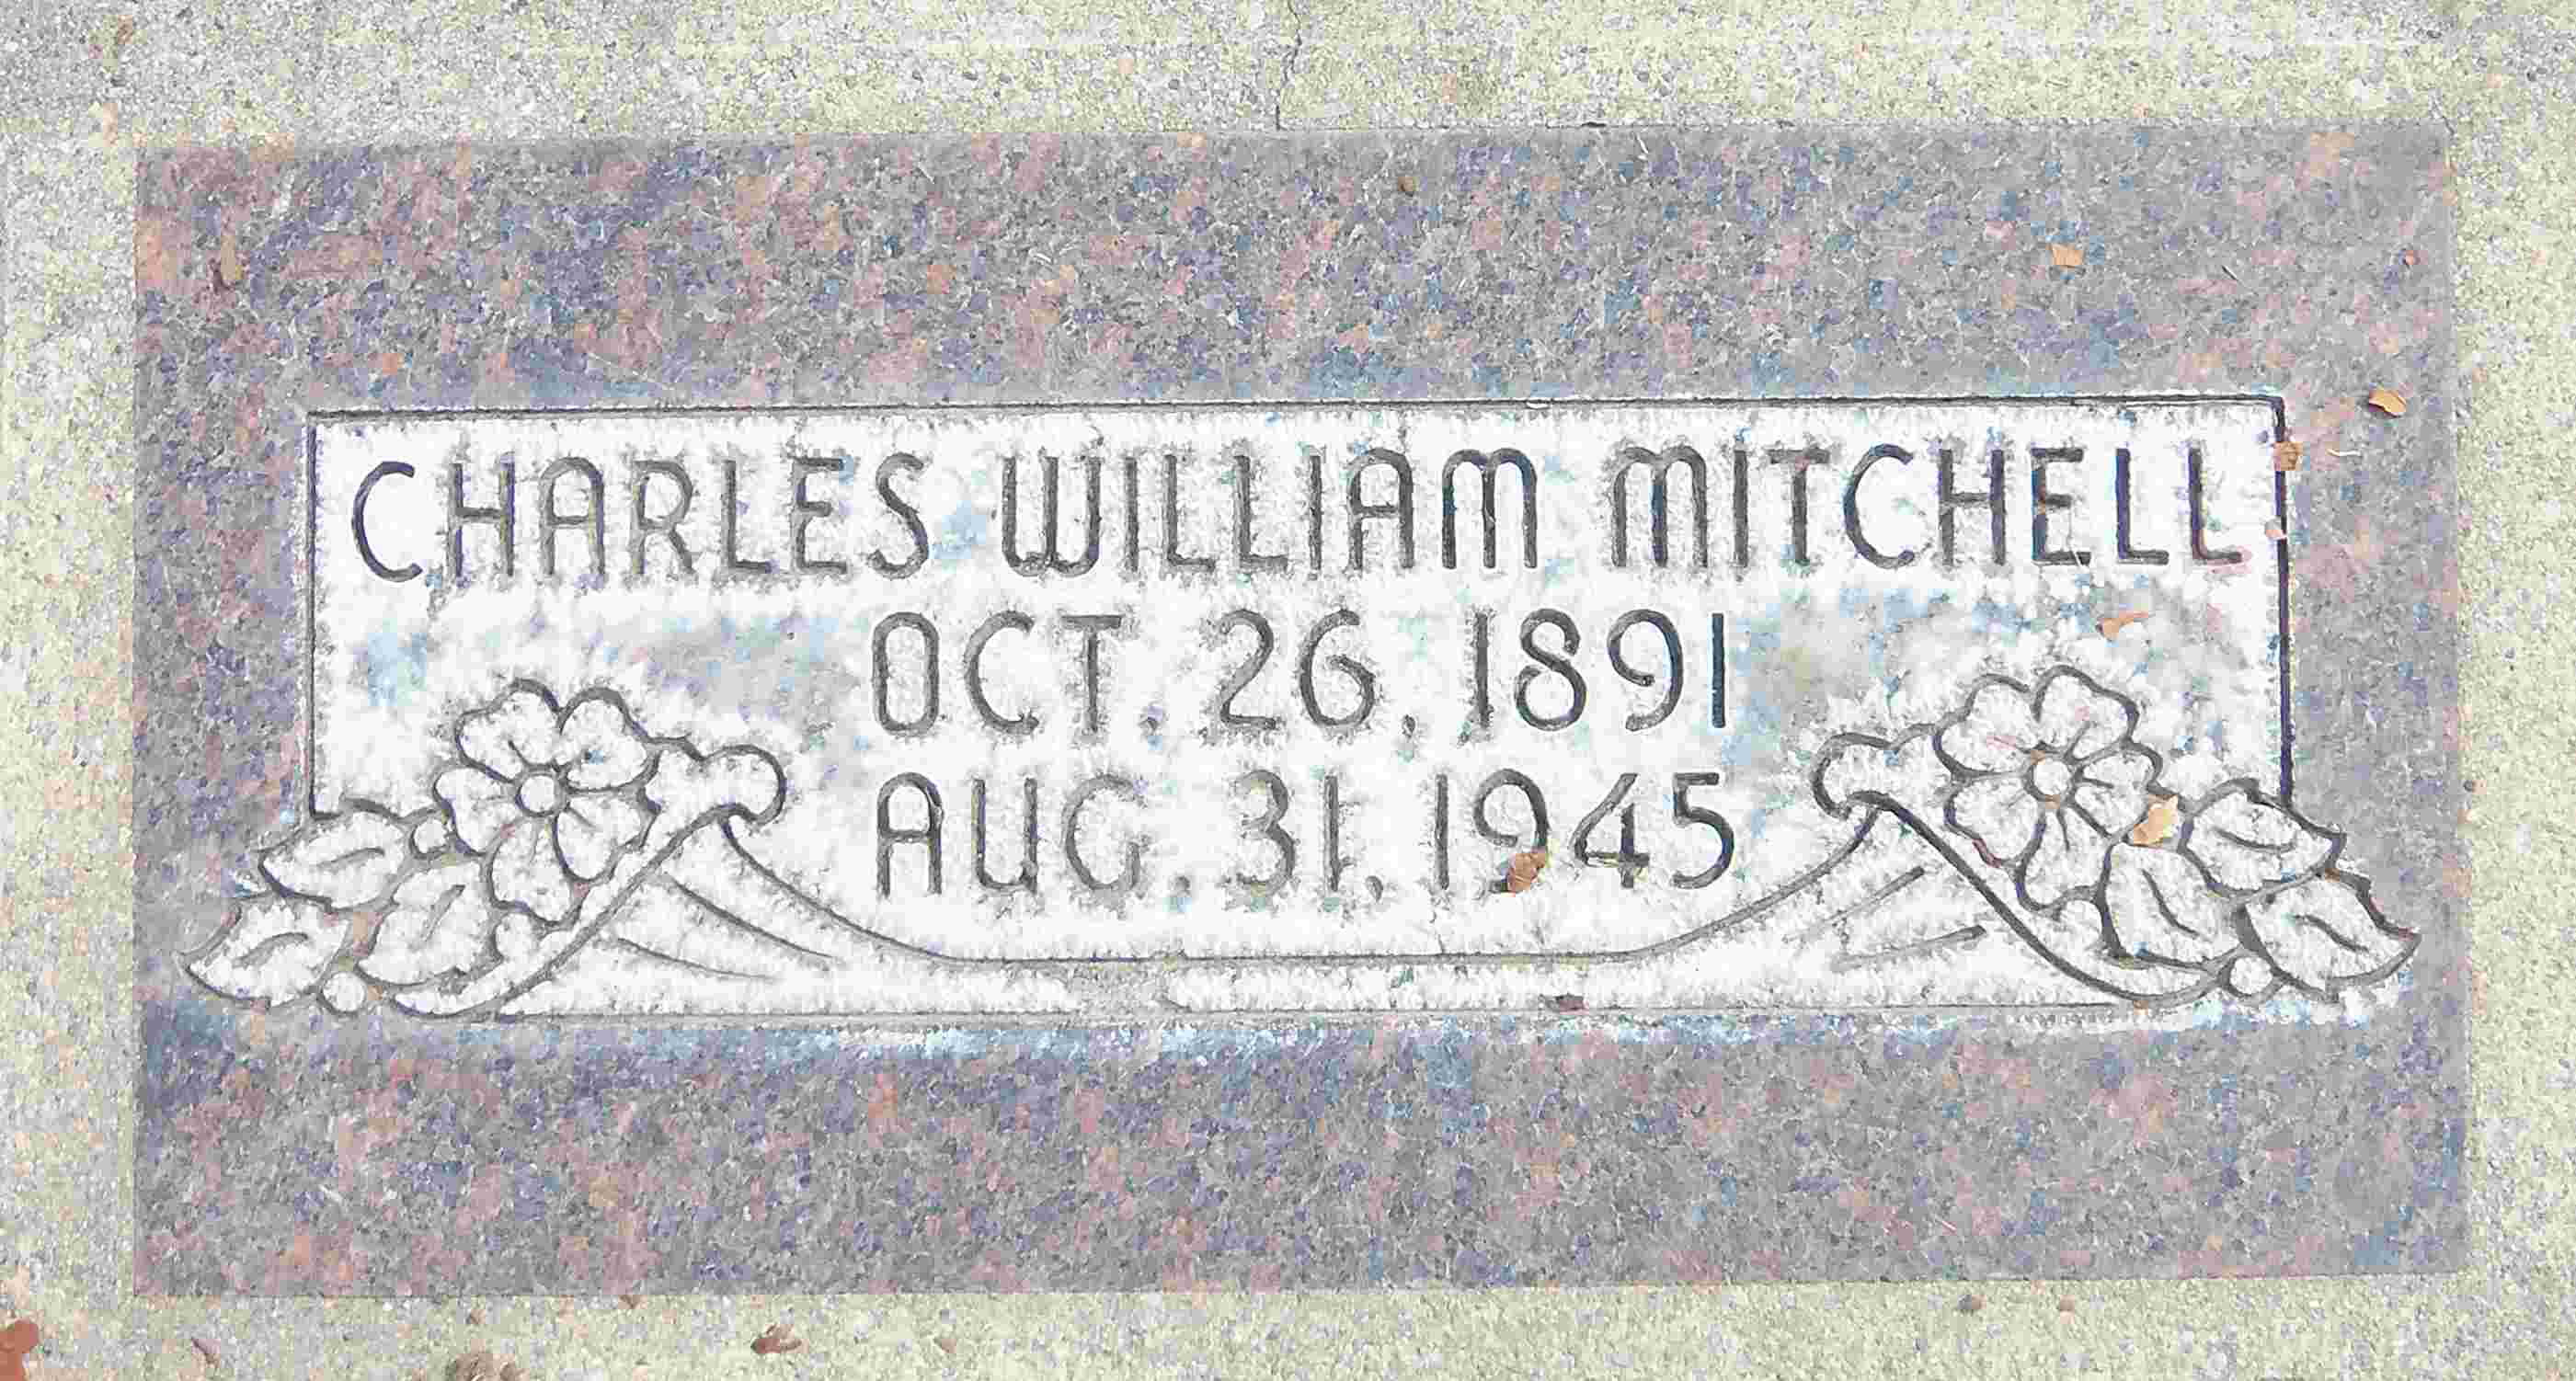 Charles William Mitchell